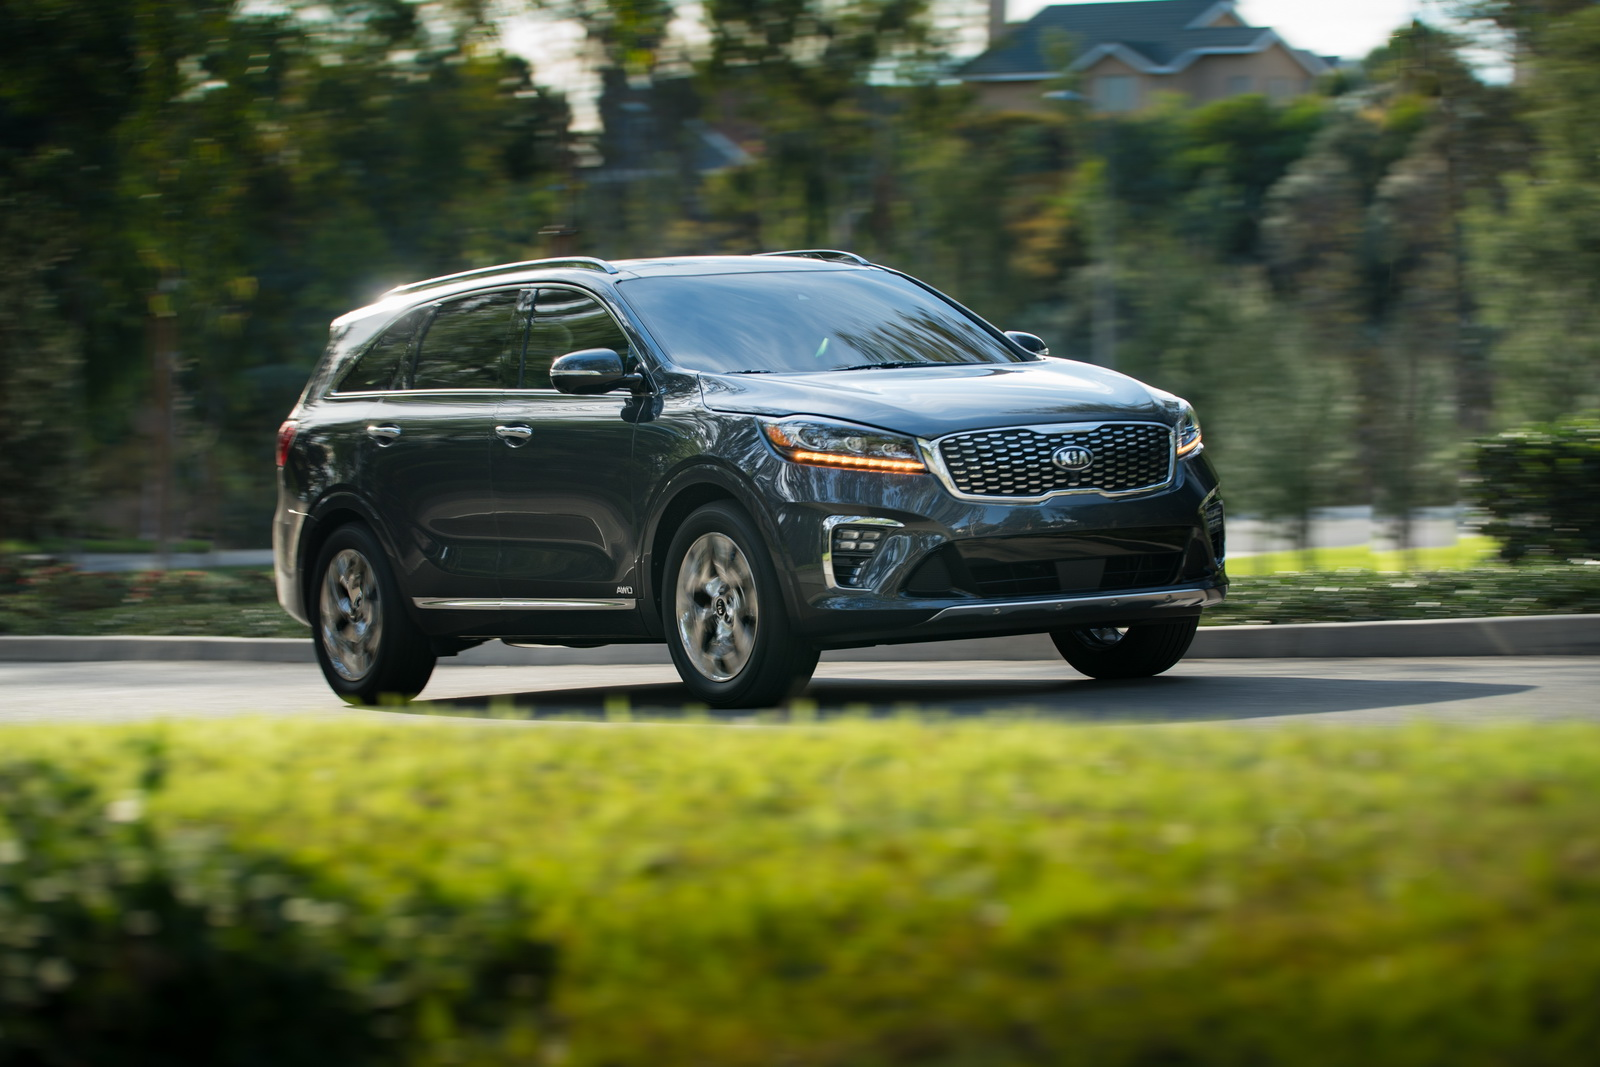 kia sorento diesel reportedly coming to america in 2019 carscoops. Black Bedroom Furniture Sets. Home Design Ideas